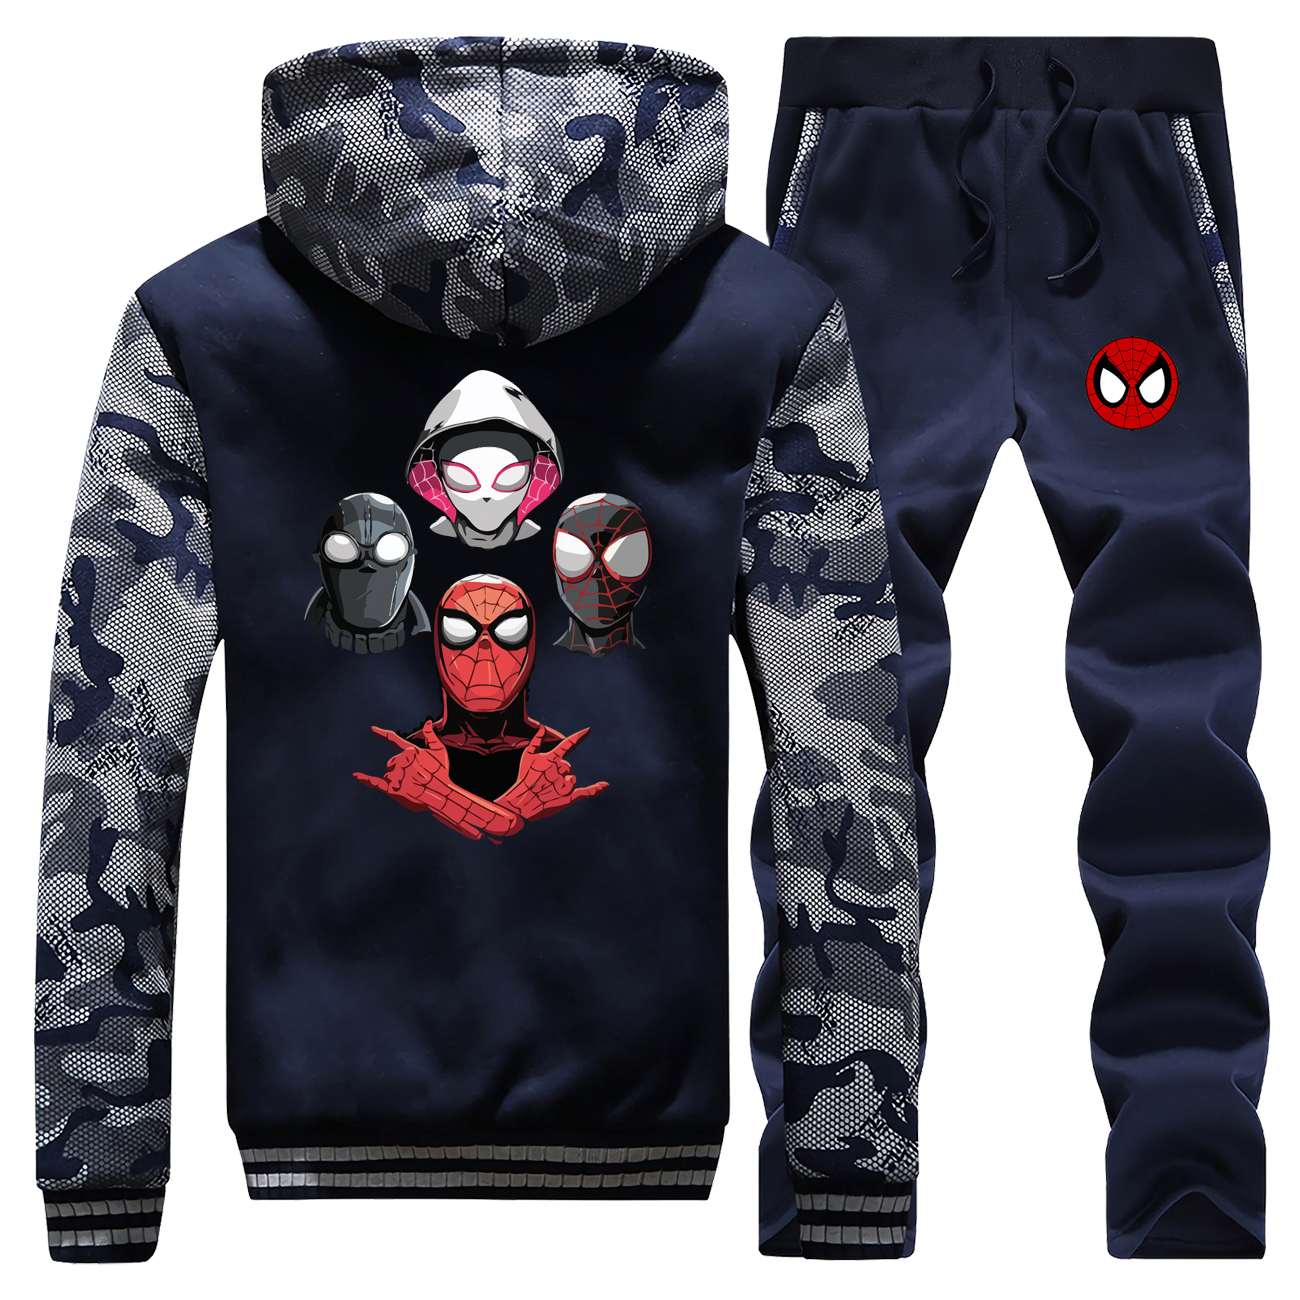 Spider-Man Sweatshirt Winter Men Hoodies Fleece Warm Suit Men Into The Spider-Verse Minimalist Zipper Jacket+Pants 2 Piece Sets